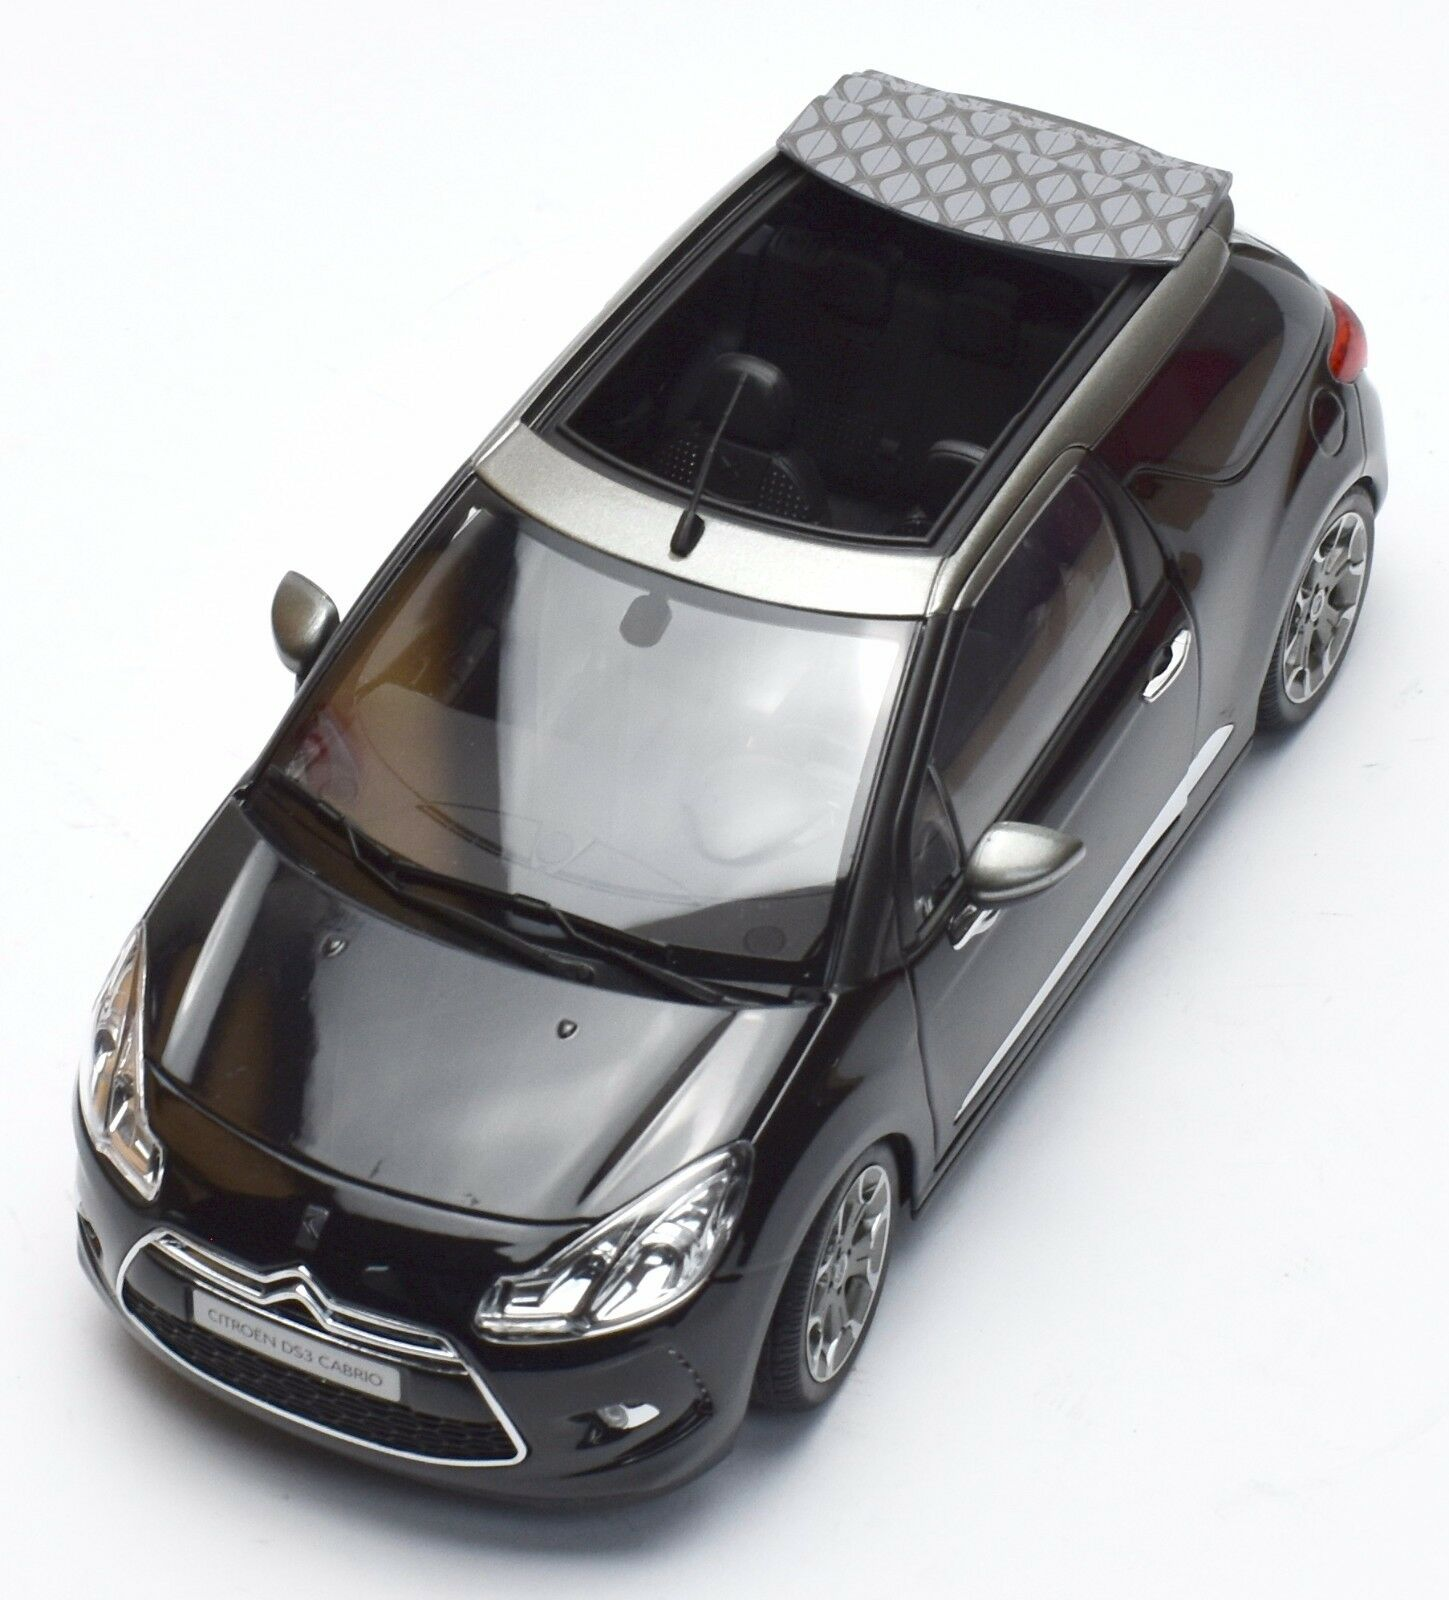 NOREV 181545 CITROEN ds3 decappottabile in nero laccato, 1 18, OVP, k024